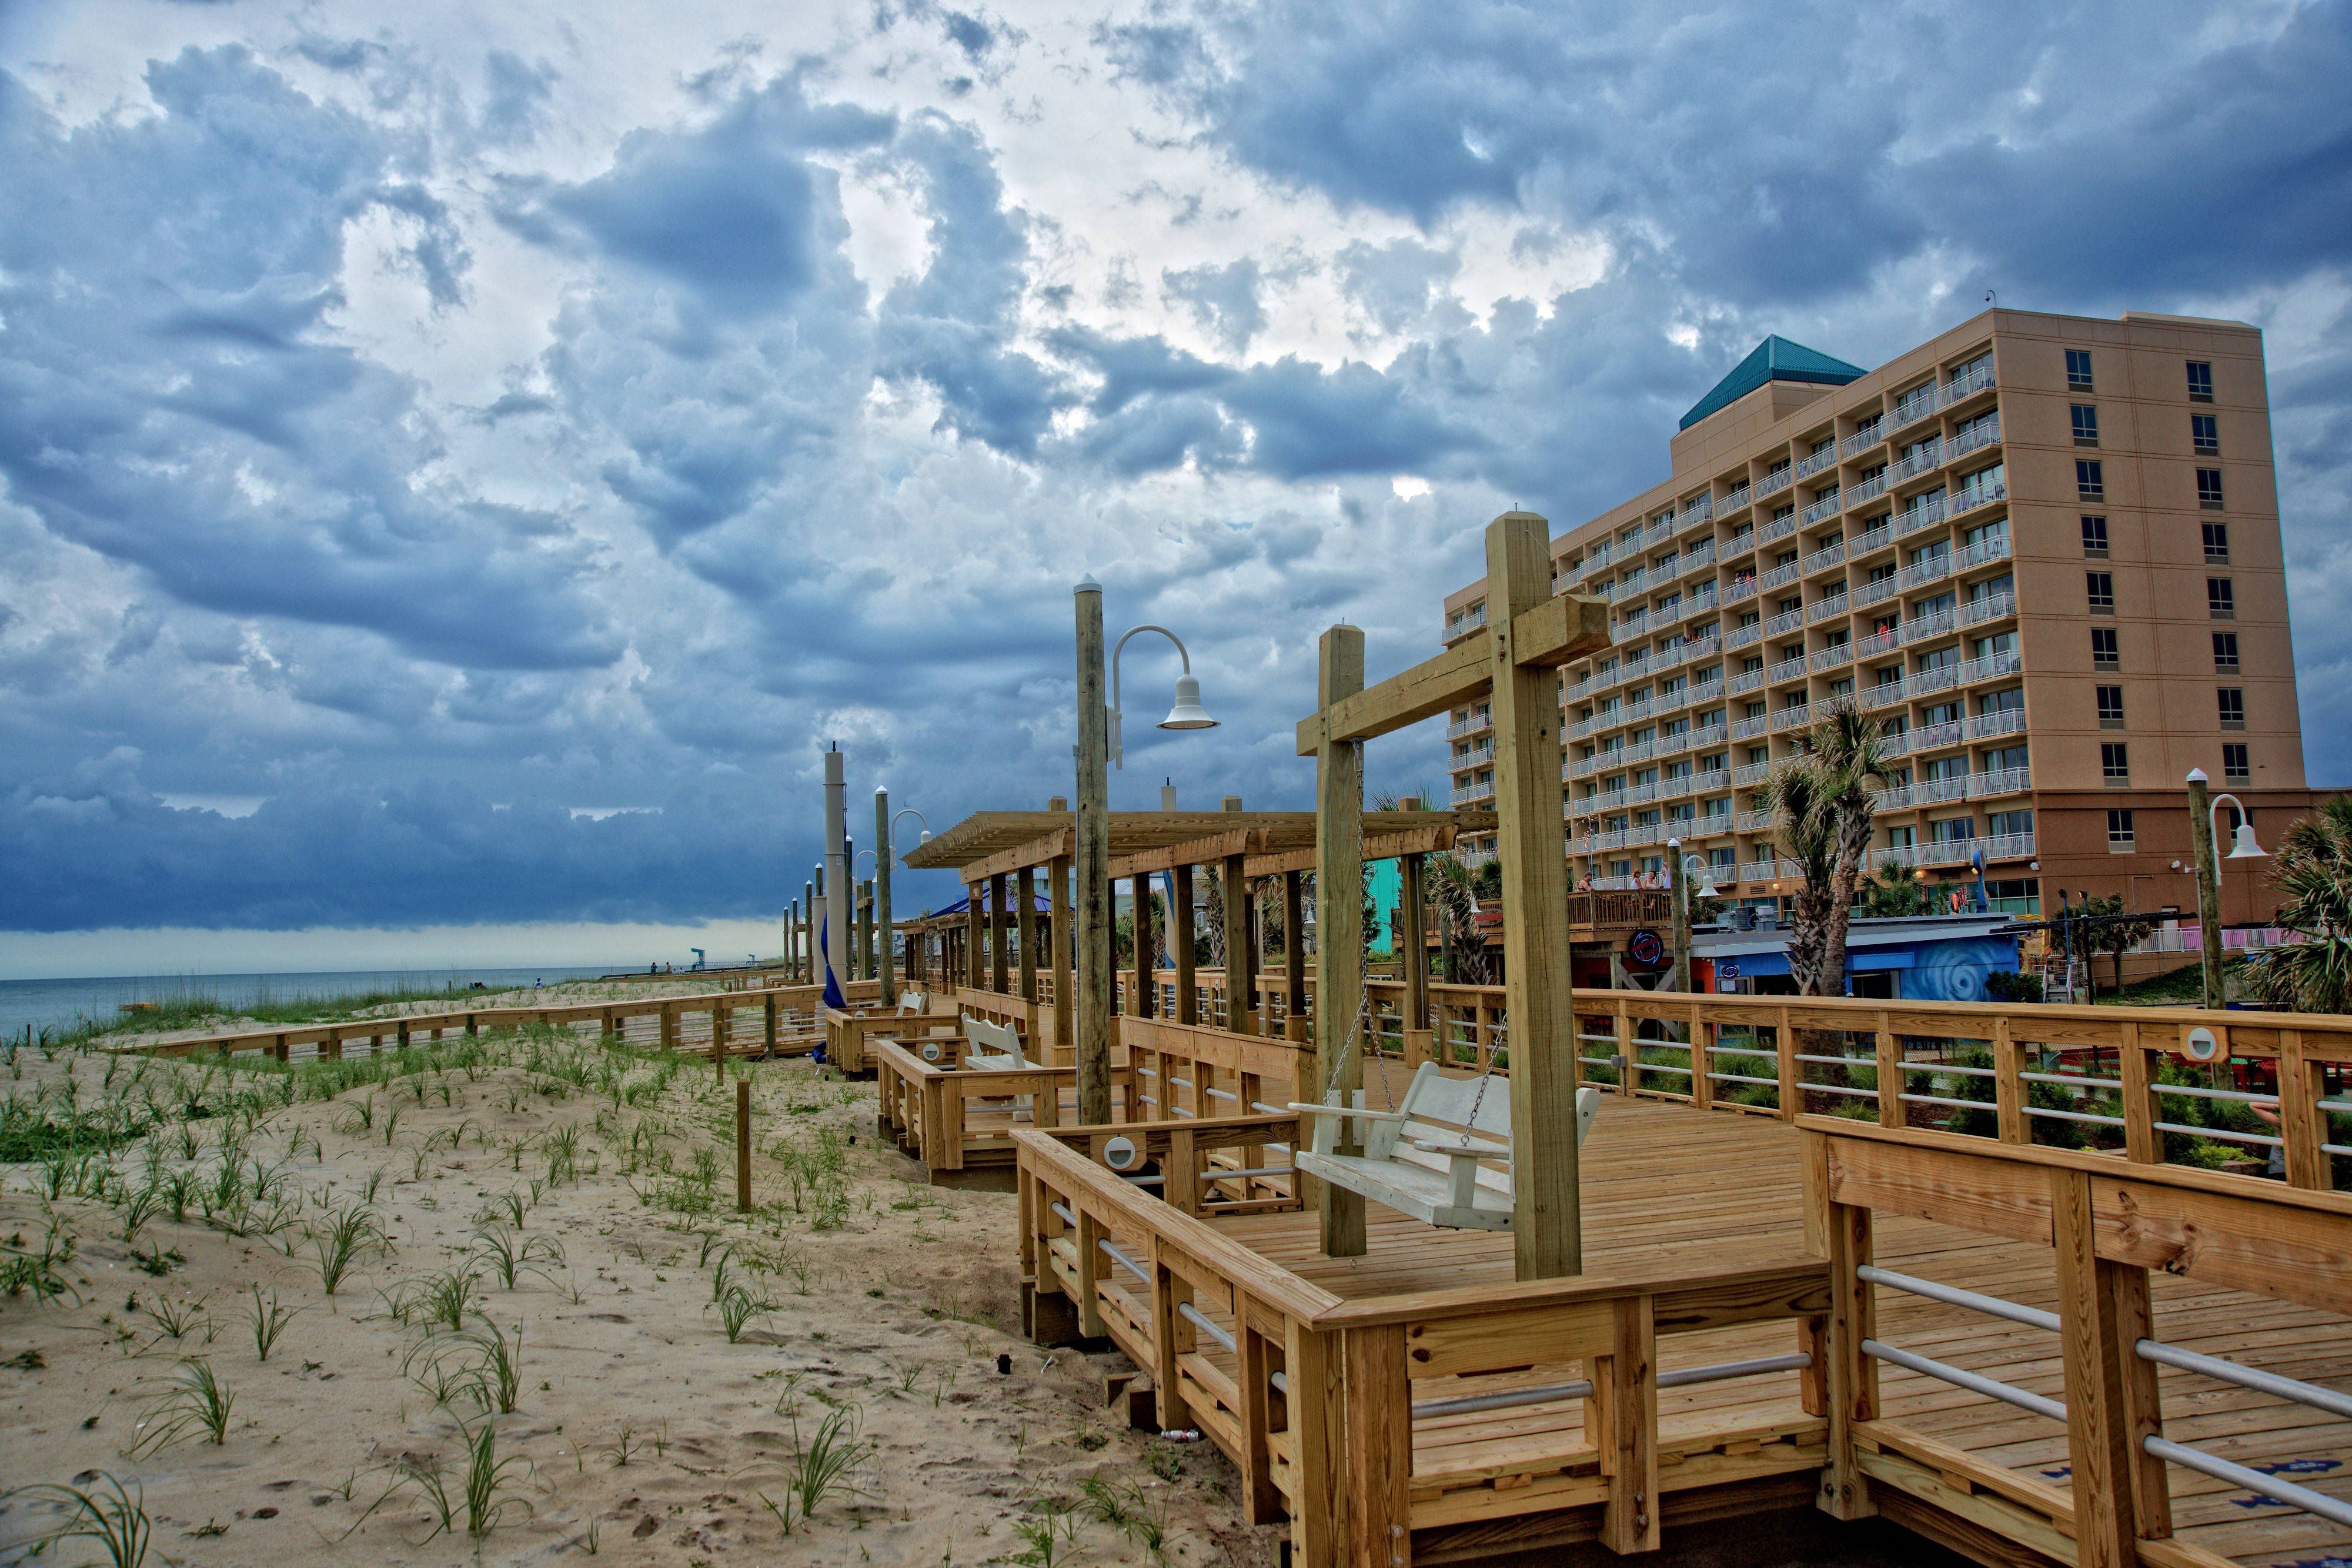 Courtyard Carolina Beach Oceanfront Exterior Boardwalk Entrance Hotels Guest Happy With Images Carolina Beach Carolina Beach Hotels Oceanfront